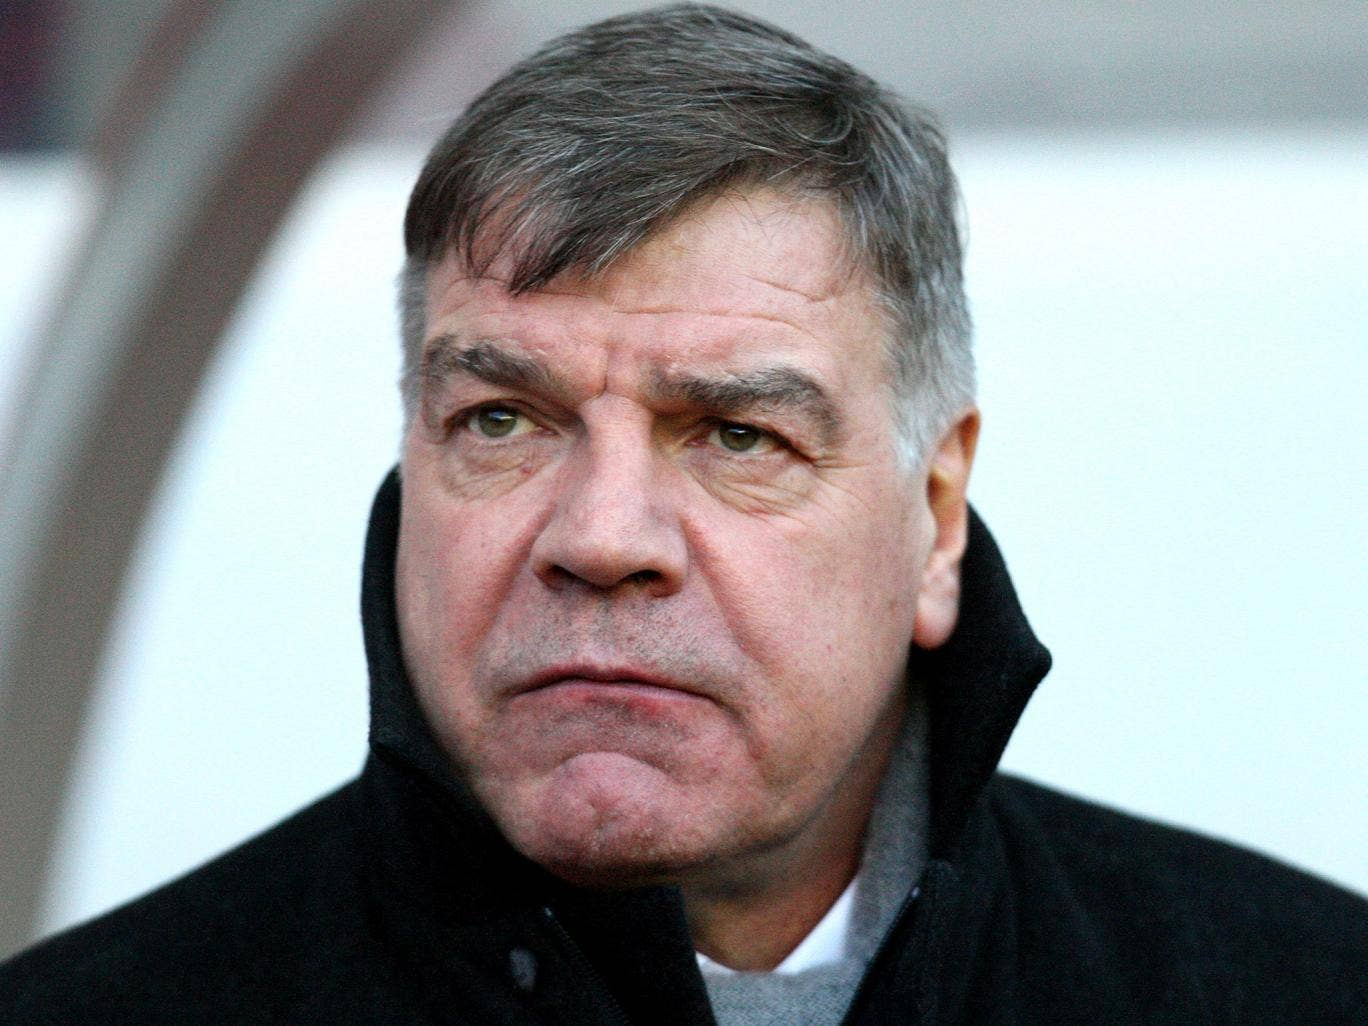 Allardyce on Arsenal's recruitment: 'The players who have come in are very good players but are they better than the ones they have sold?'